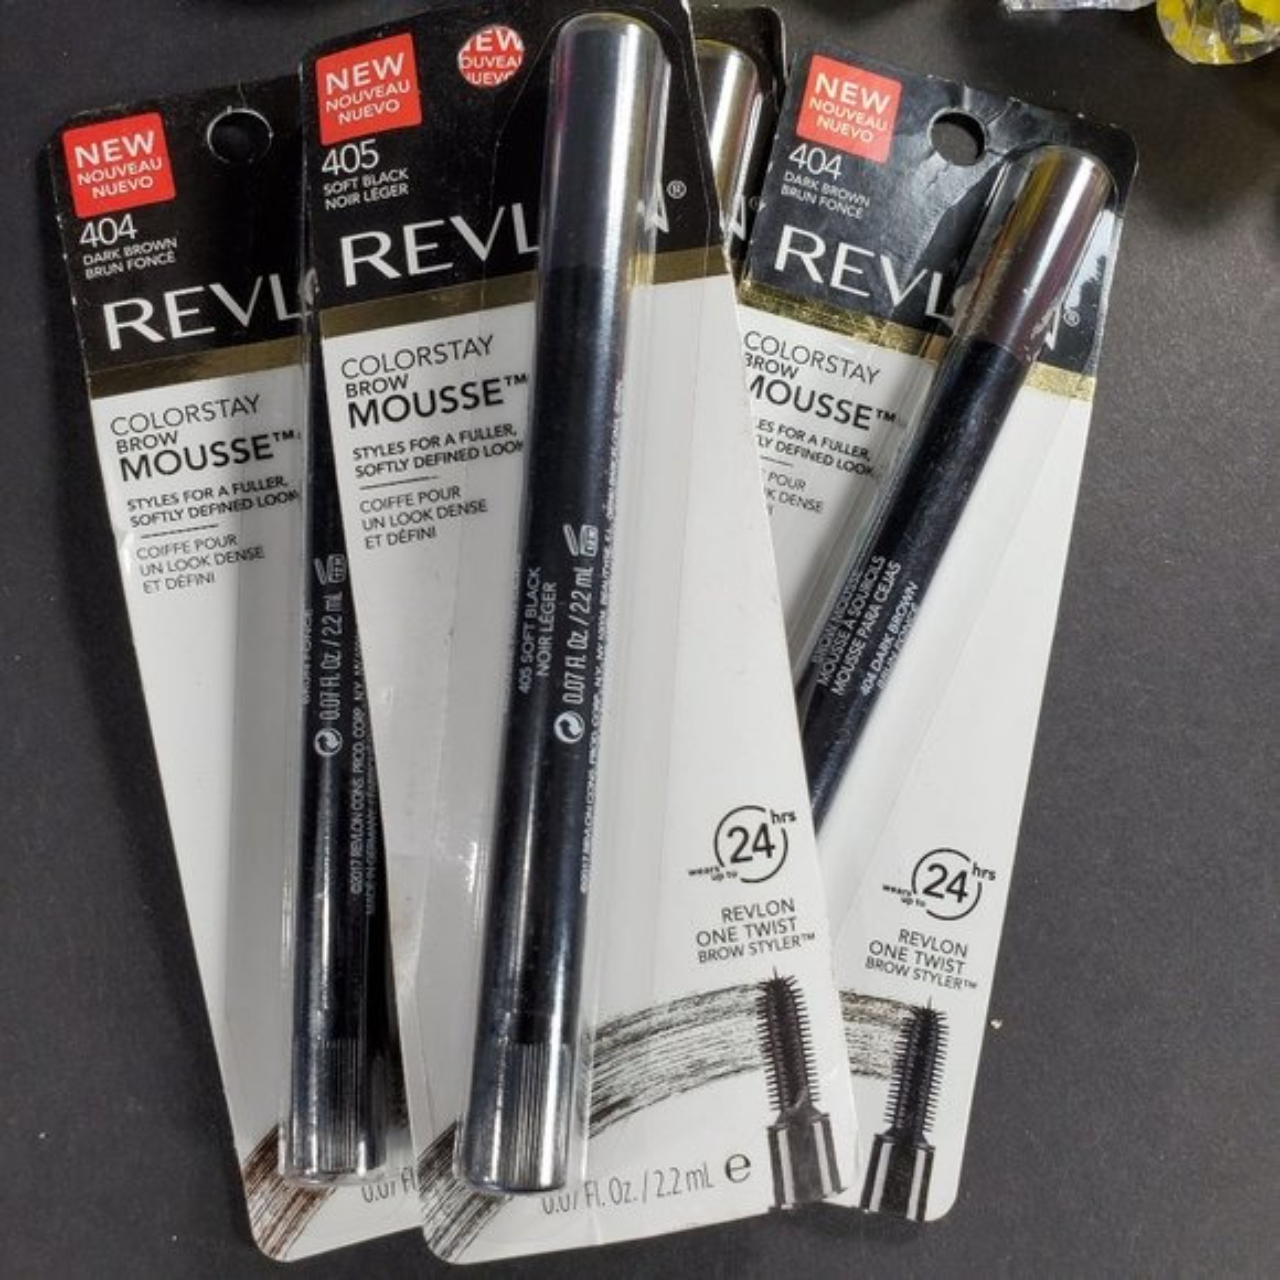 Product Image 1 - Revlon Color Stay Brow Mousse